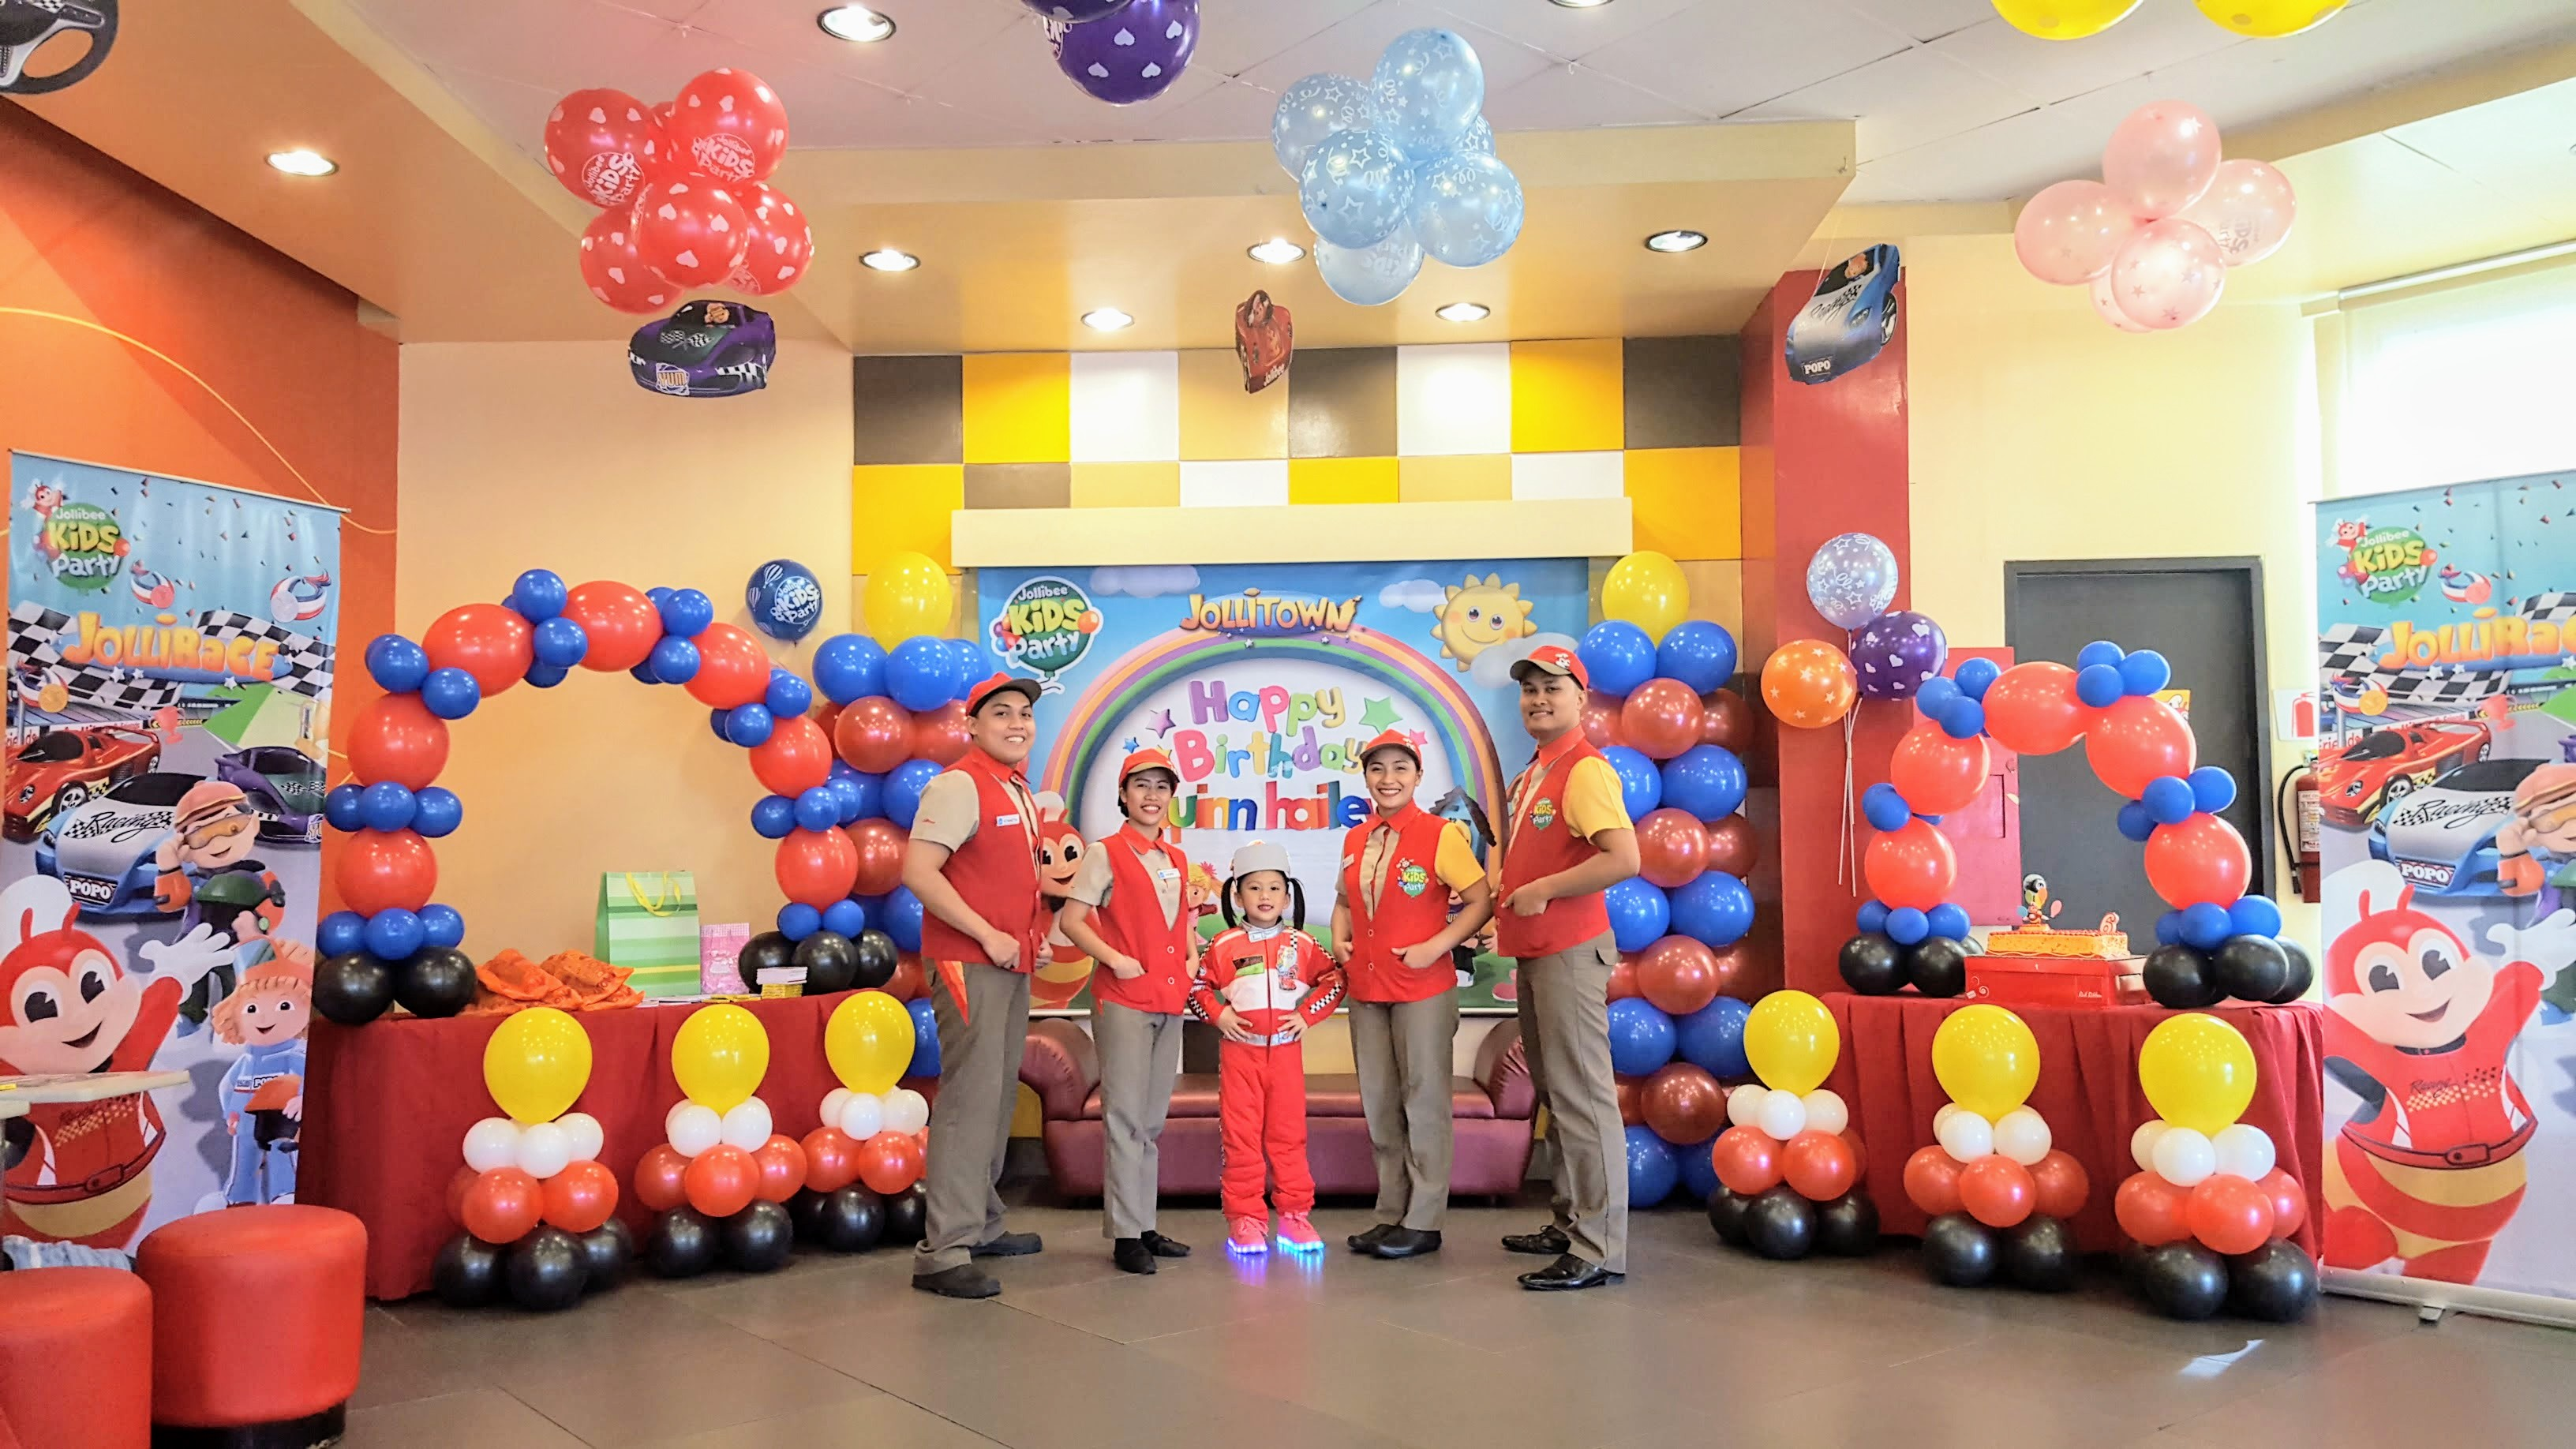 Rev up for jollibees new exciting party theme jollirace gensan rev up for jollibees new exciting party theme jollirace gensan news online mag stopboris Gallery